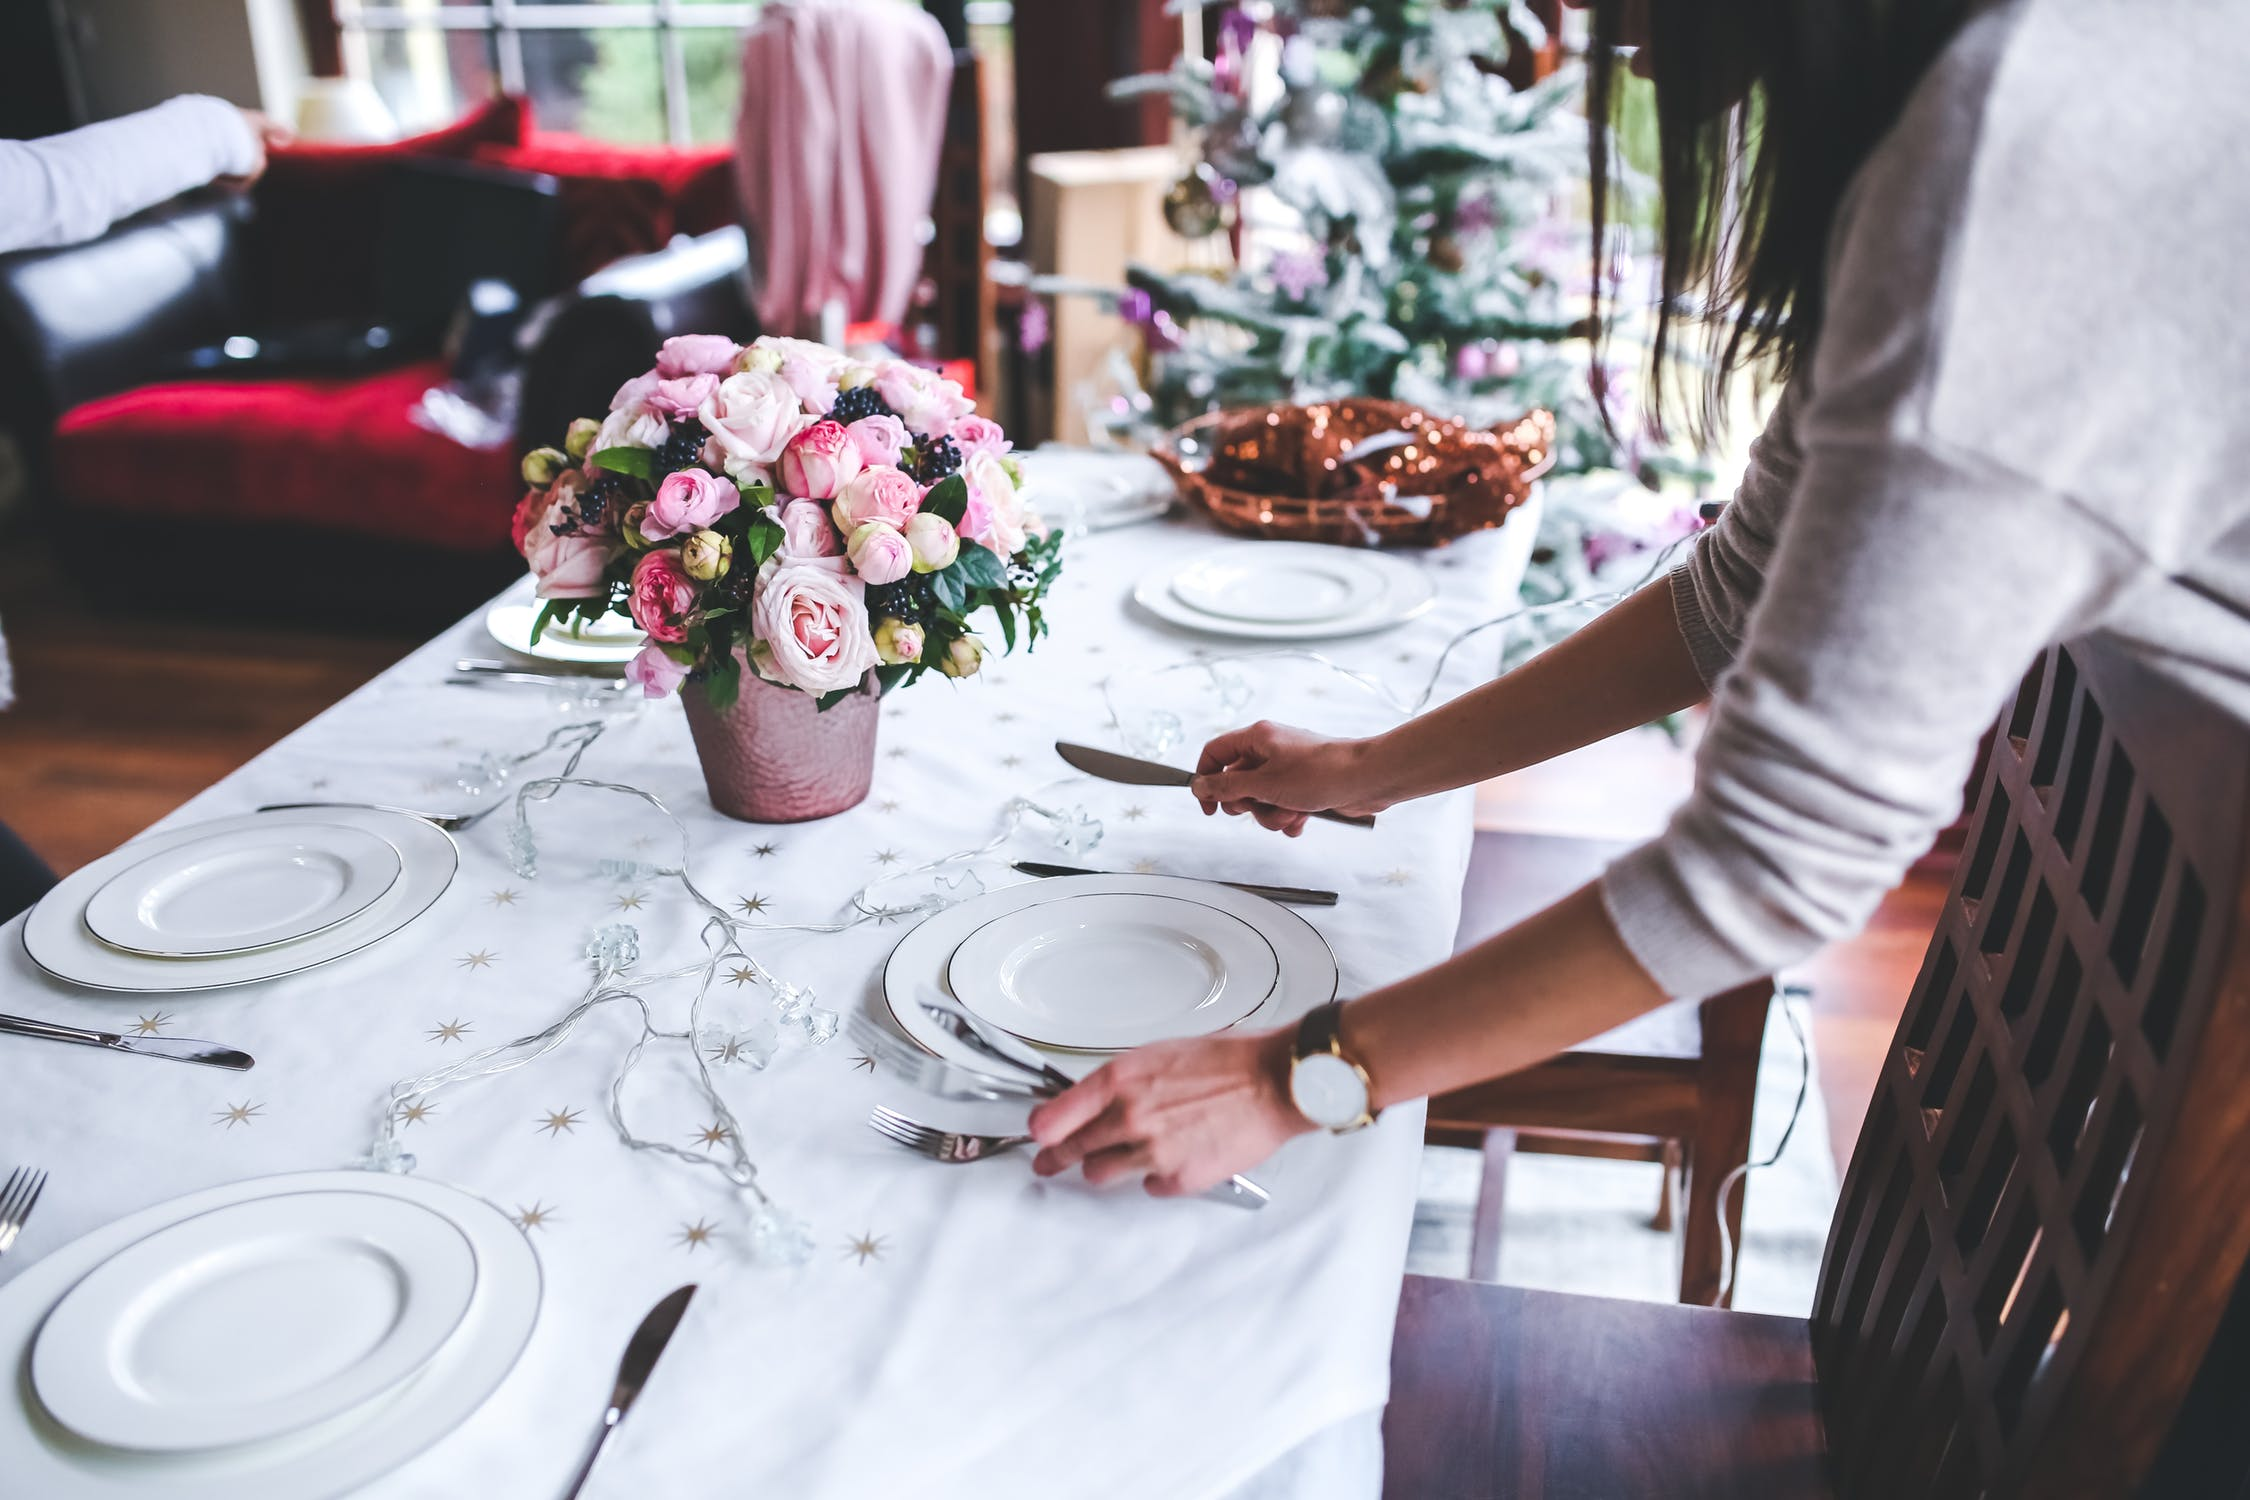 Make Your First Dinner Party a Success with These Top Tips